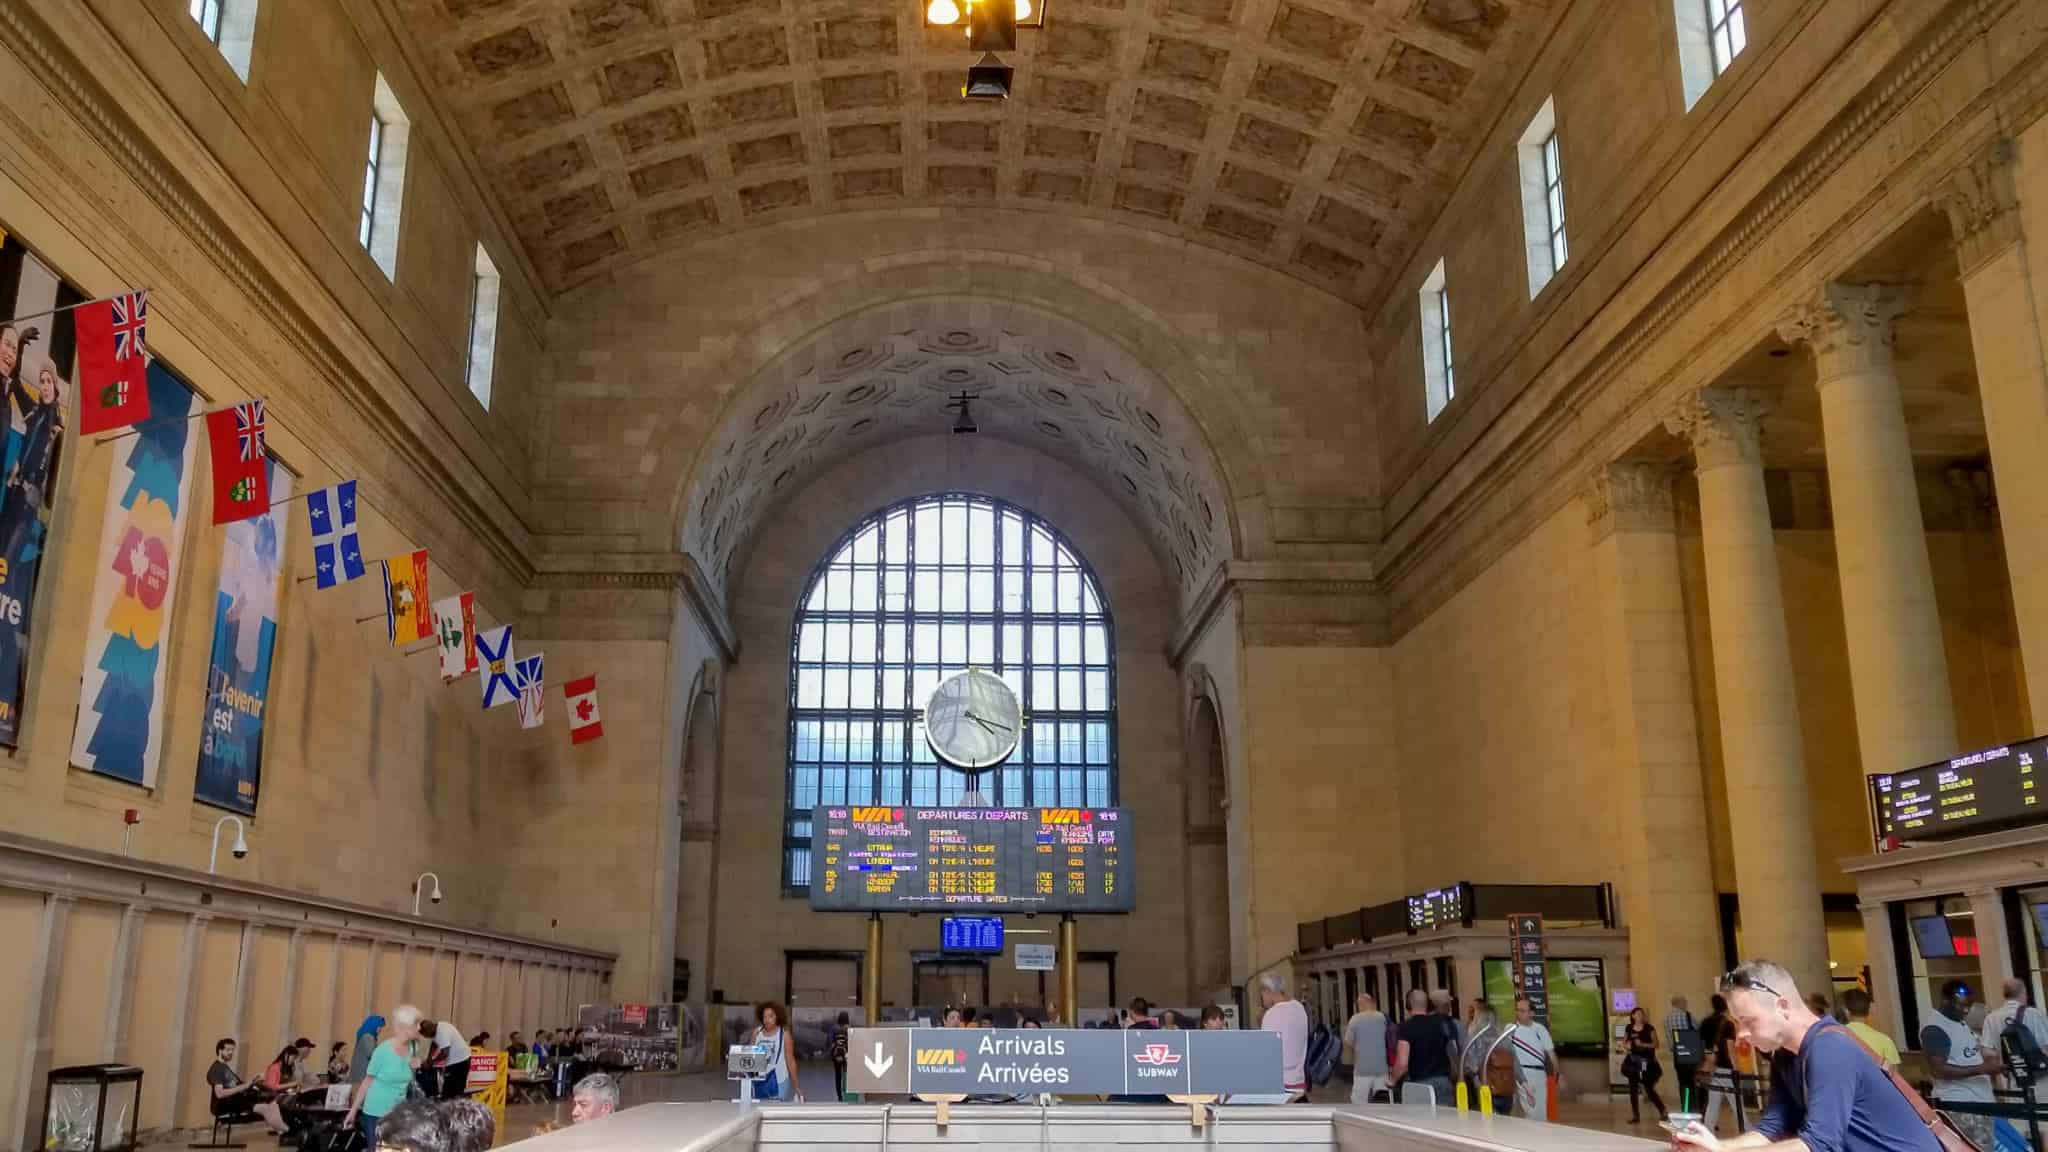 Checking out Union Station is one of the free things to do in Toronto